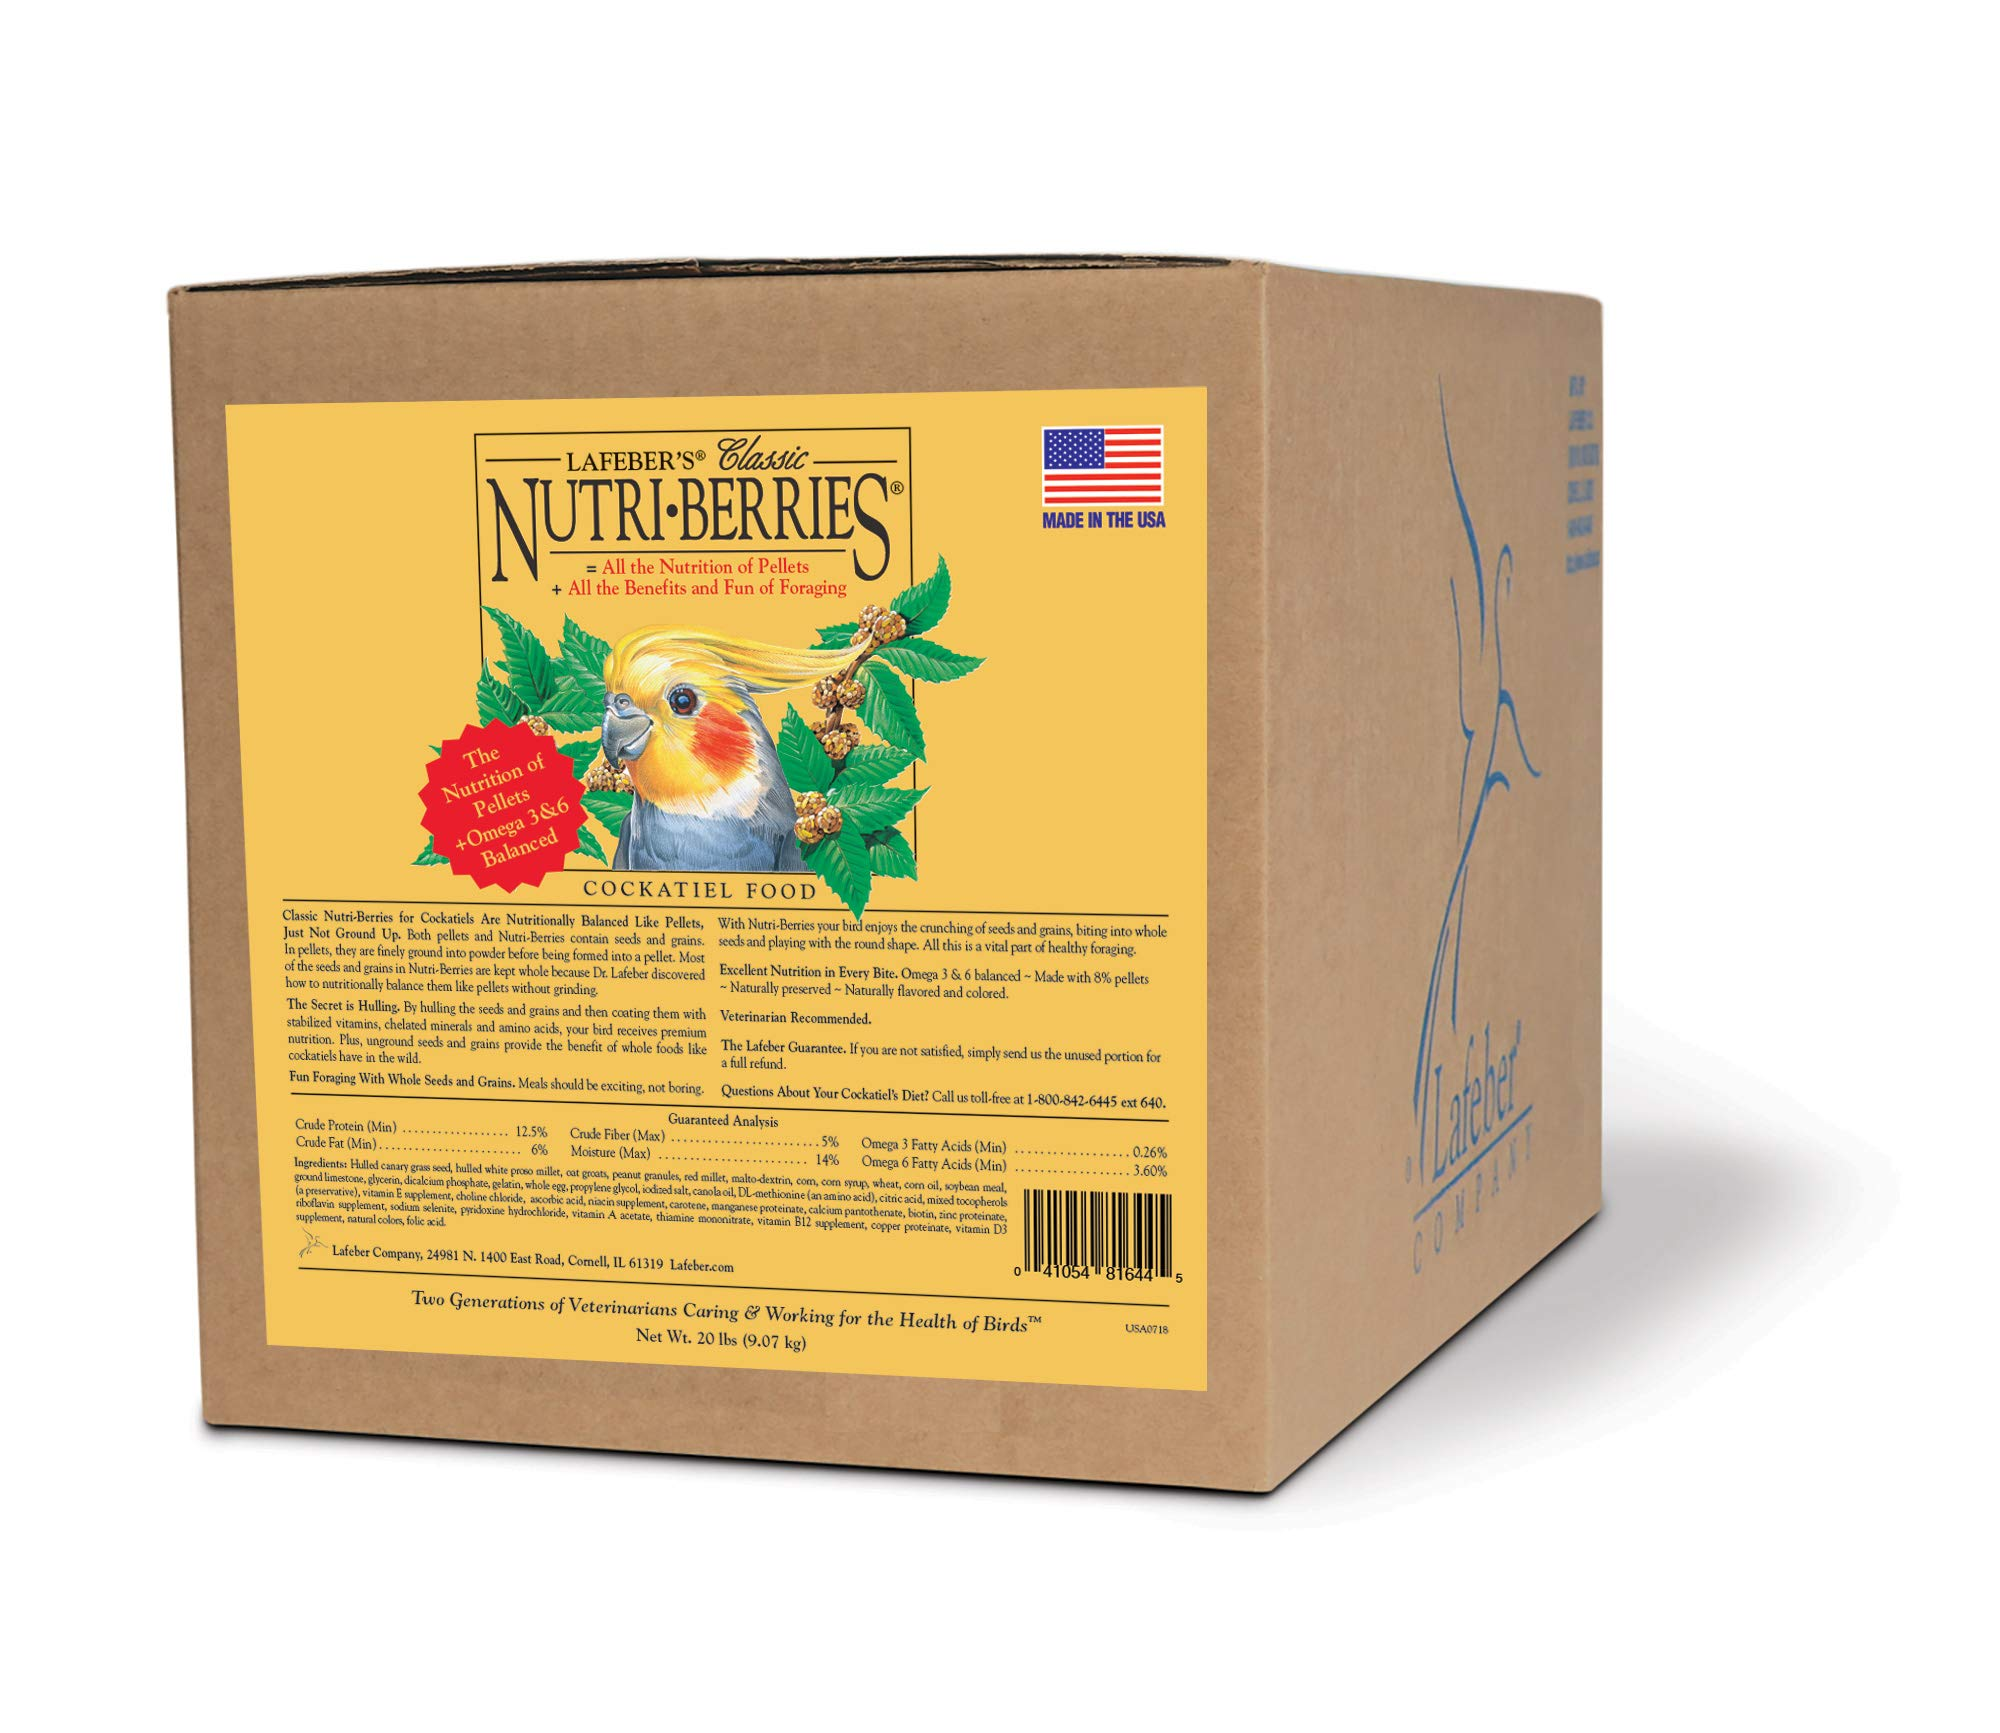 LAFEBER'S Classic Nutri-Berries Pet Bird Food, Made with Non-GMO and Human-Grade Ingredients, for Cockatiels, 20 lbs by LAFEBER'S